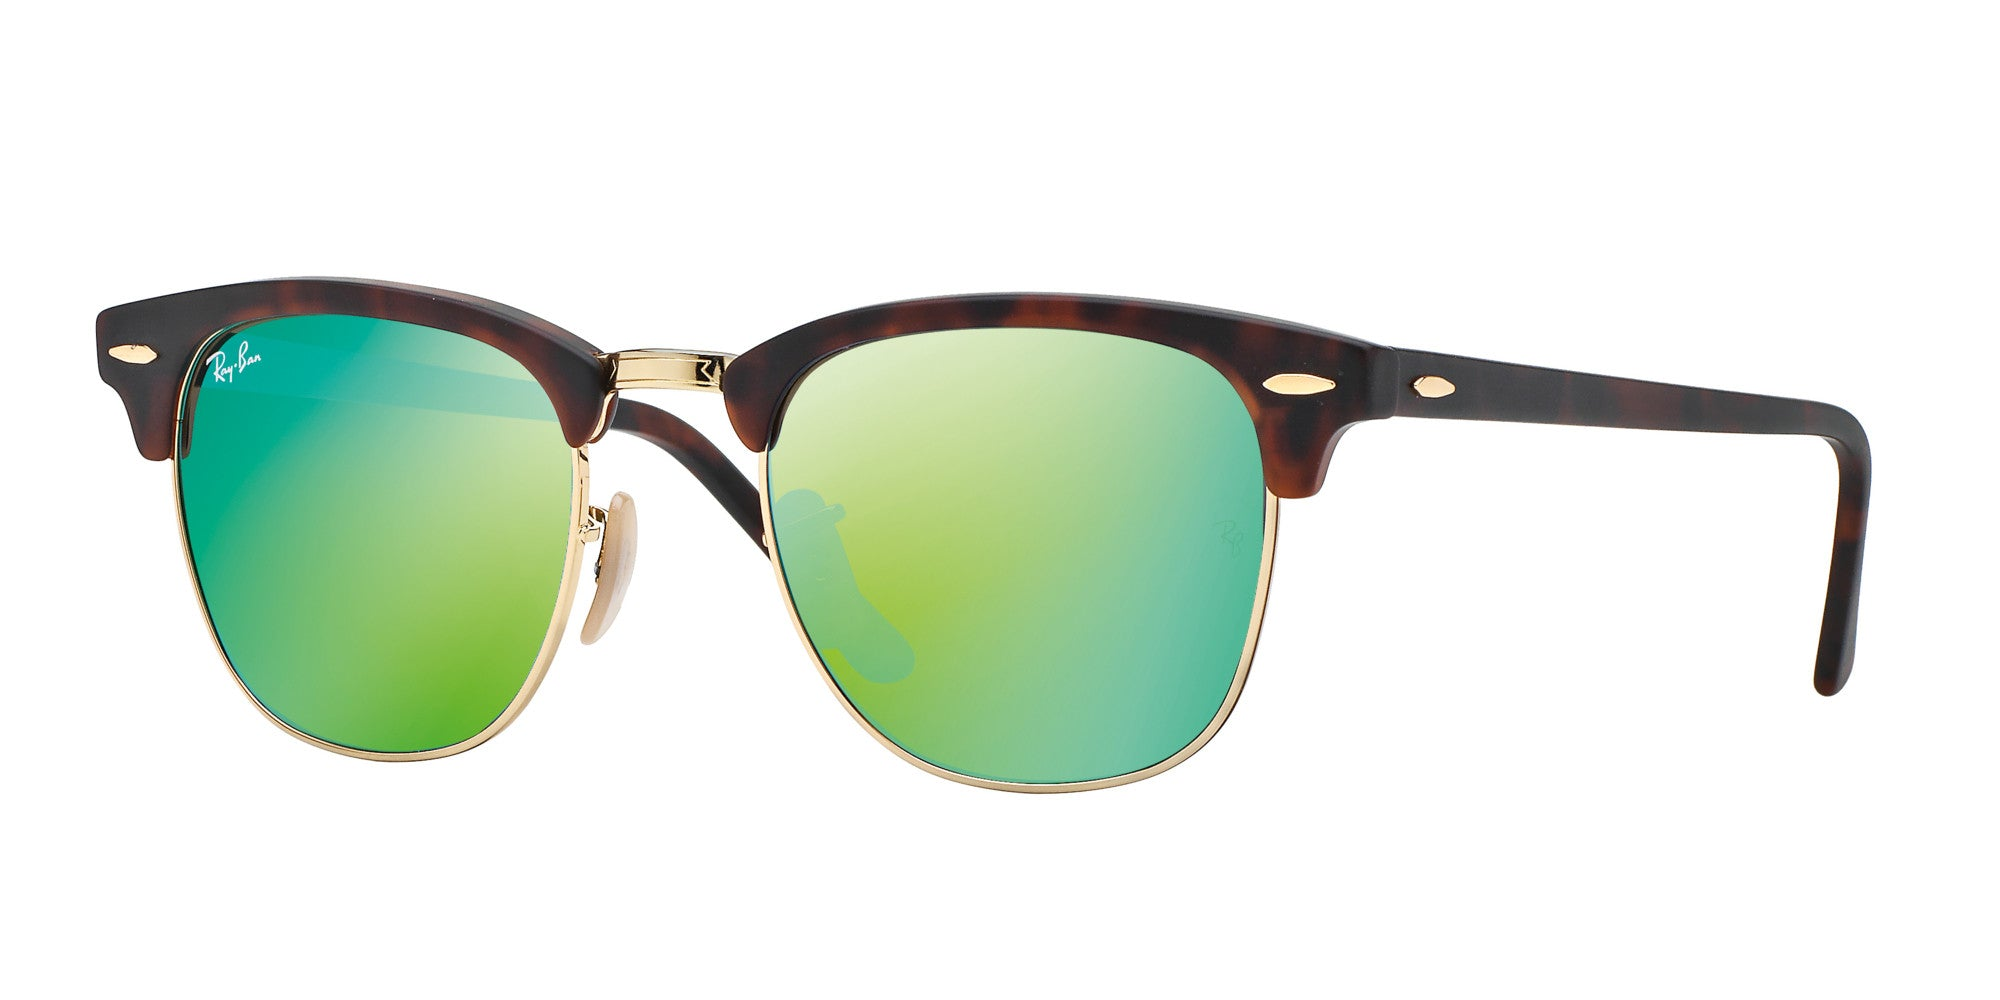 f05be696d2ef67 Ray-Ban CLUBMASTER - SAND HAVANA GOLD Frame GREY MIRROR GREEN Lenses 51mm  Non